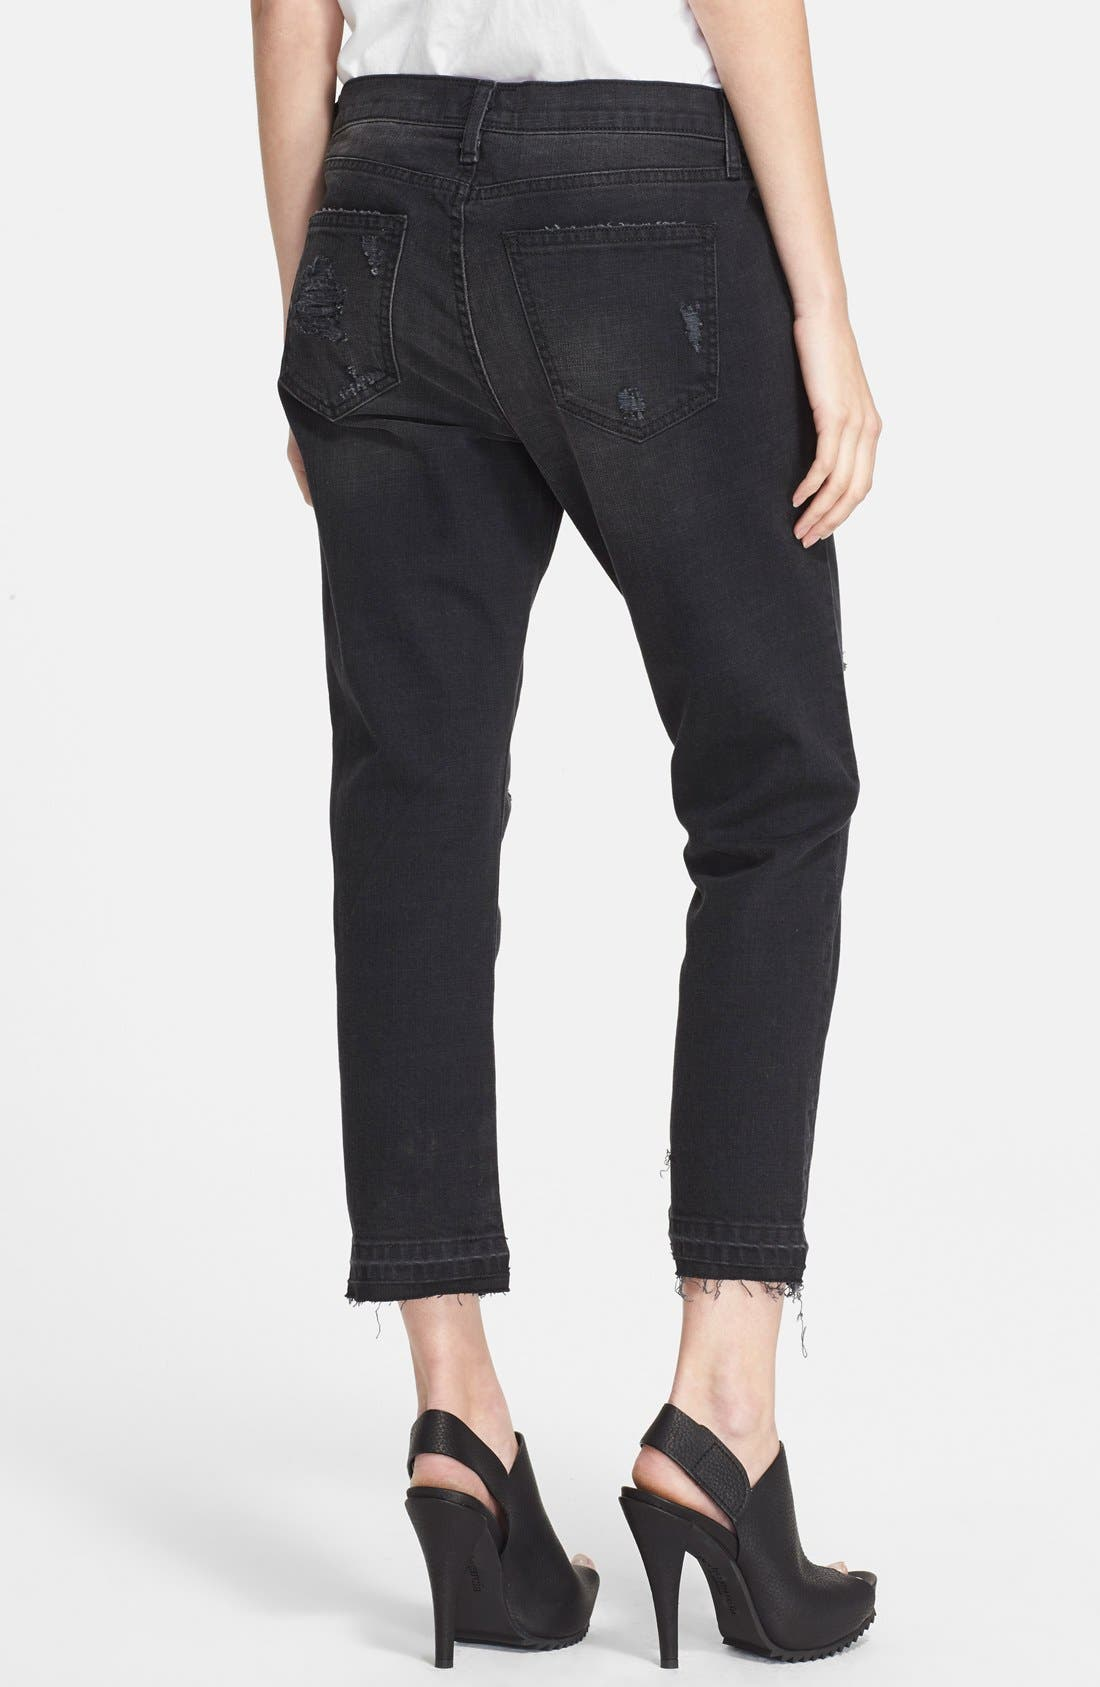 Alternate Image 2  - Current/Elliott 'The Cropped Straight' Destroyed Jeans (Townhouse Destroy) (Nordstrom Exclusive)